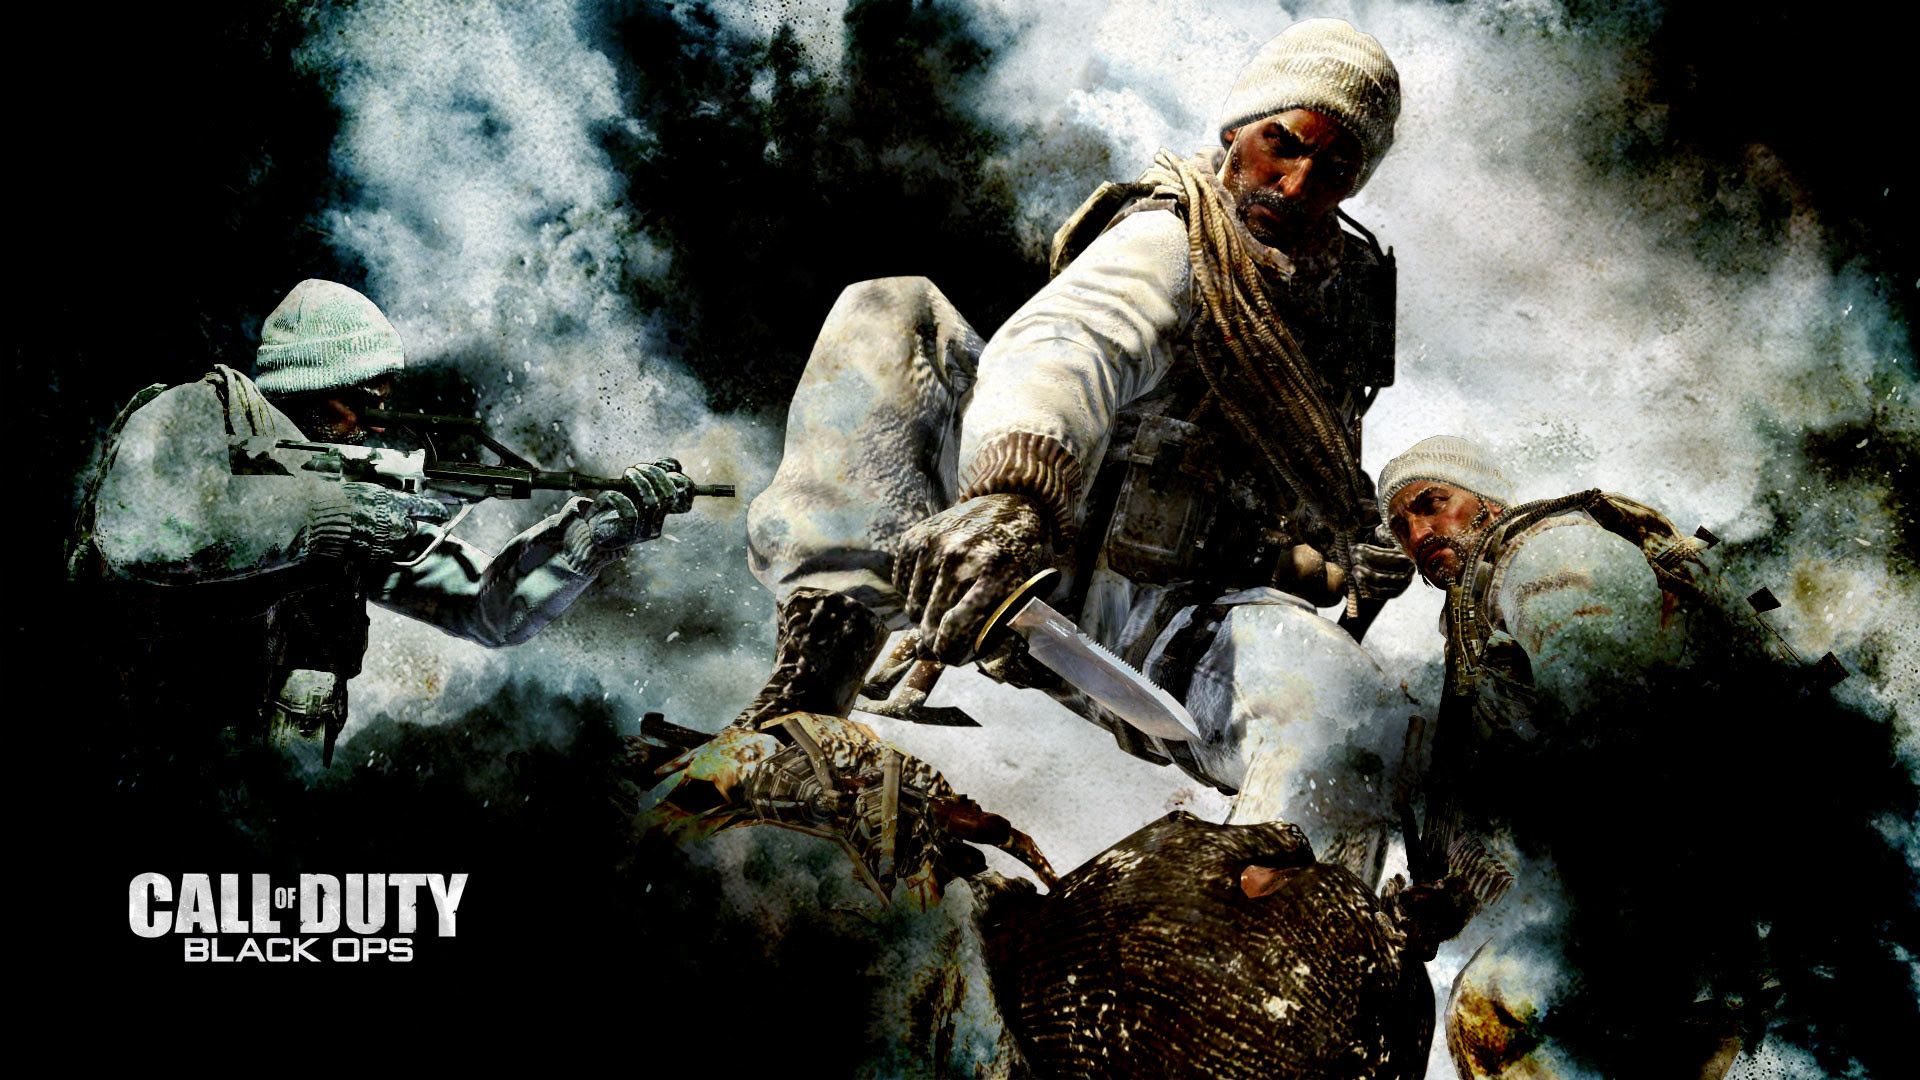 Cool Call Of Duty Wallpapers 61 Images